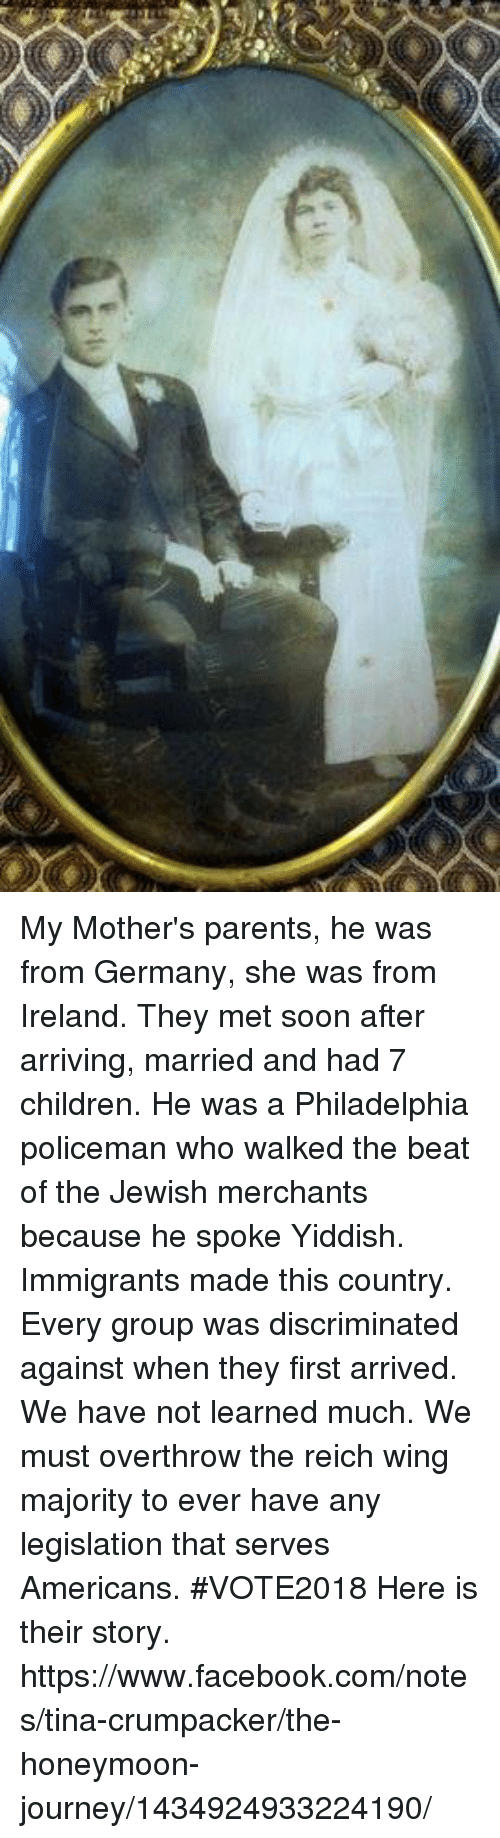 Children, Facebook, and Honeymoon: My Mother's parents, he was from Germany, she was from Ireland. They met soon after arriving, married and had 7 children. He was a Philadelphia policeman who walked the beat of the Jewish merchants because he spoke Yiddish.  Immigrants made this country.  Every group was discriminated against when they first arrived.  We have not learned much.  We must overthrow the reich wing majority to ever have any legislation that serves Americans. #VOTE2018  Here is their story. https://www.facebook.com/notes/tina-crumpacker/the-honeymoon-journey/1434924933224190/